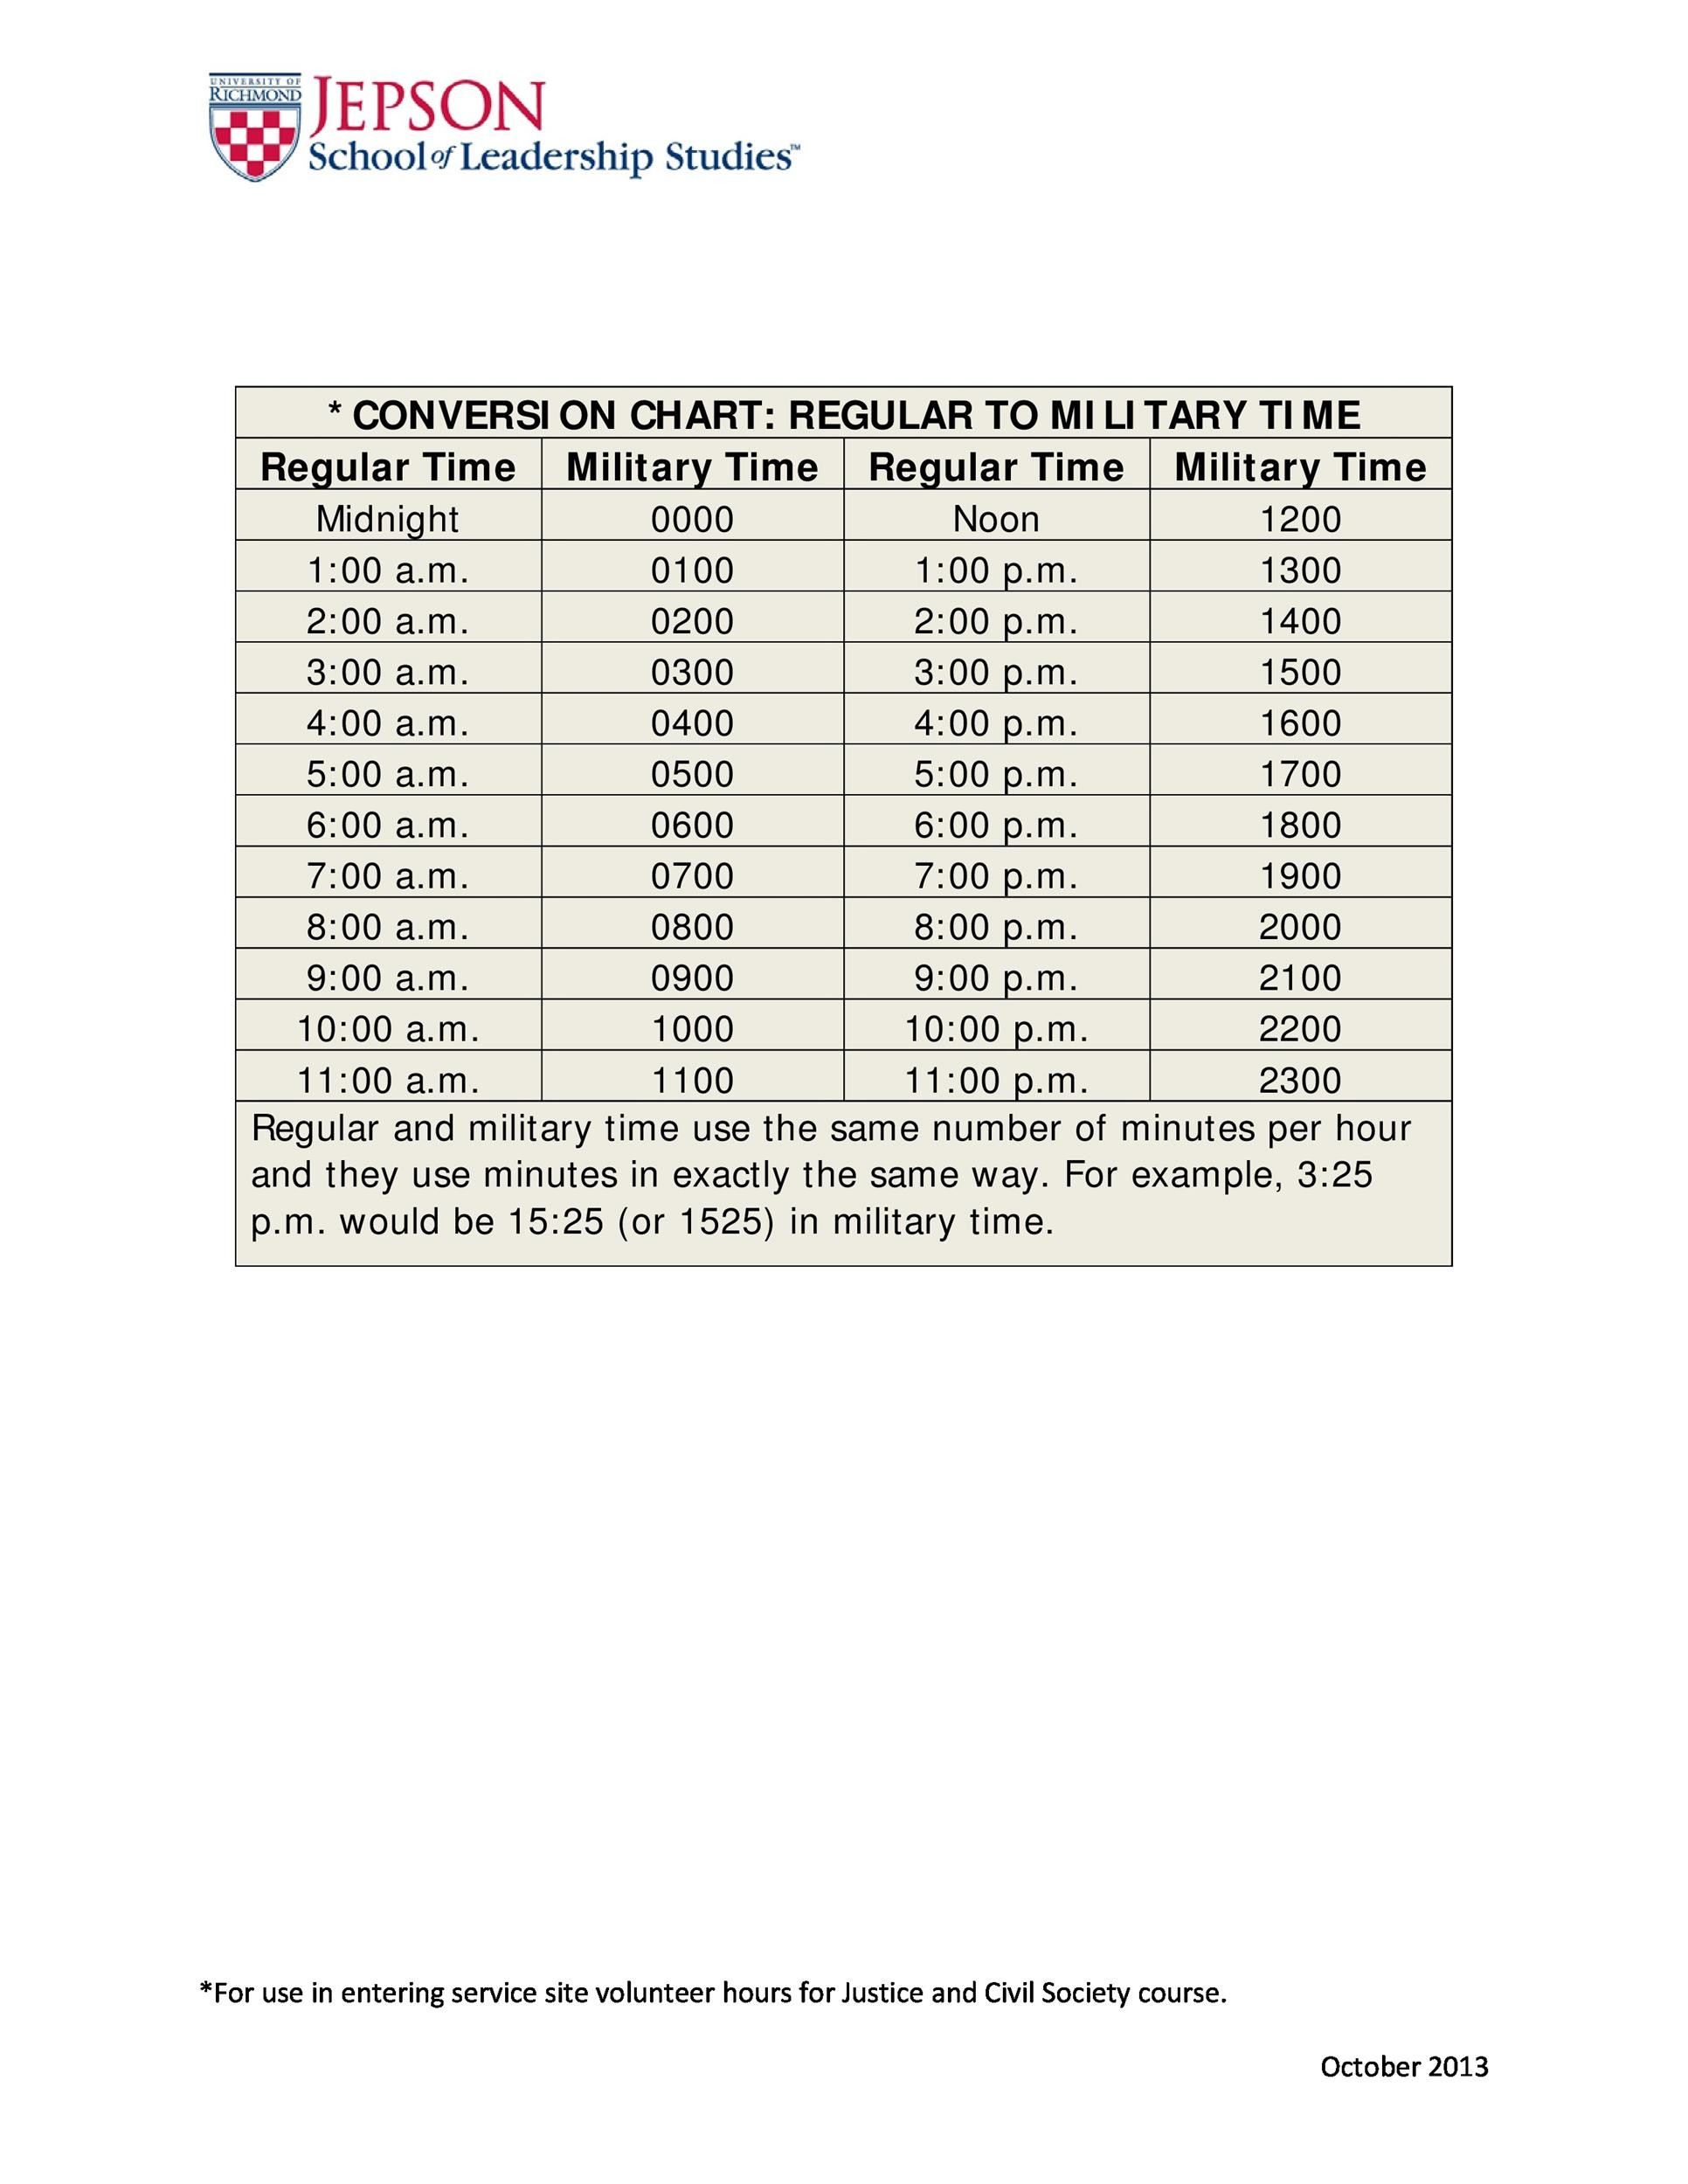 Military Time Chart Template 06 237.79 KB